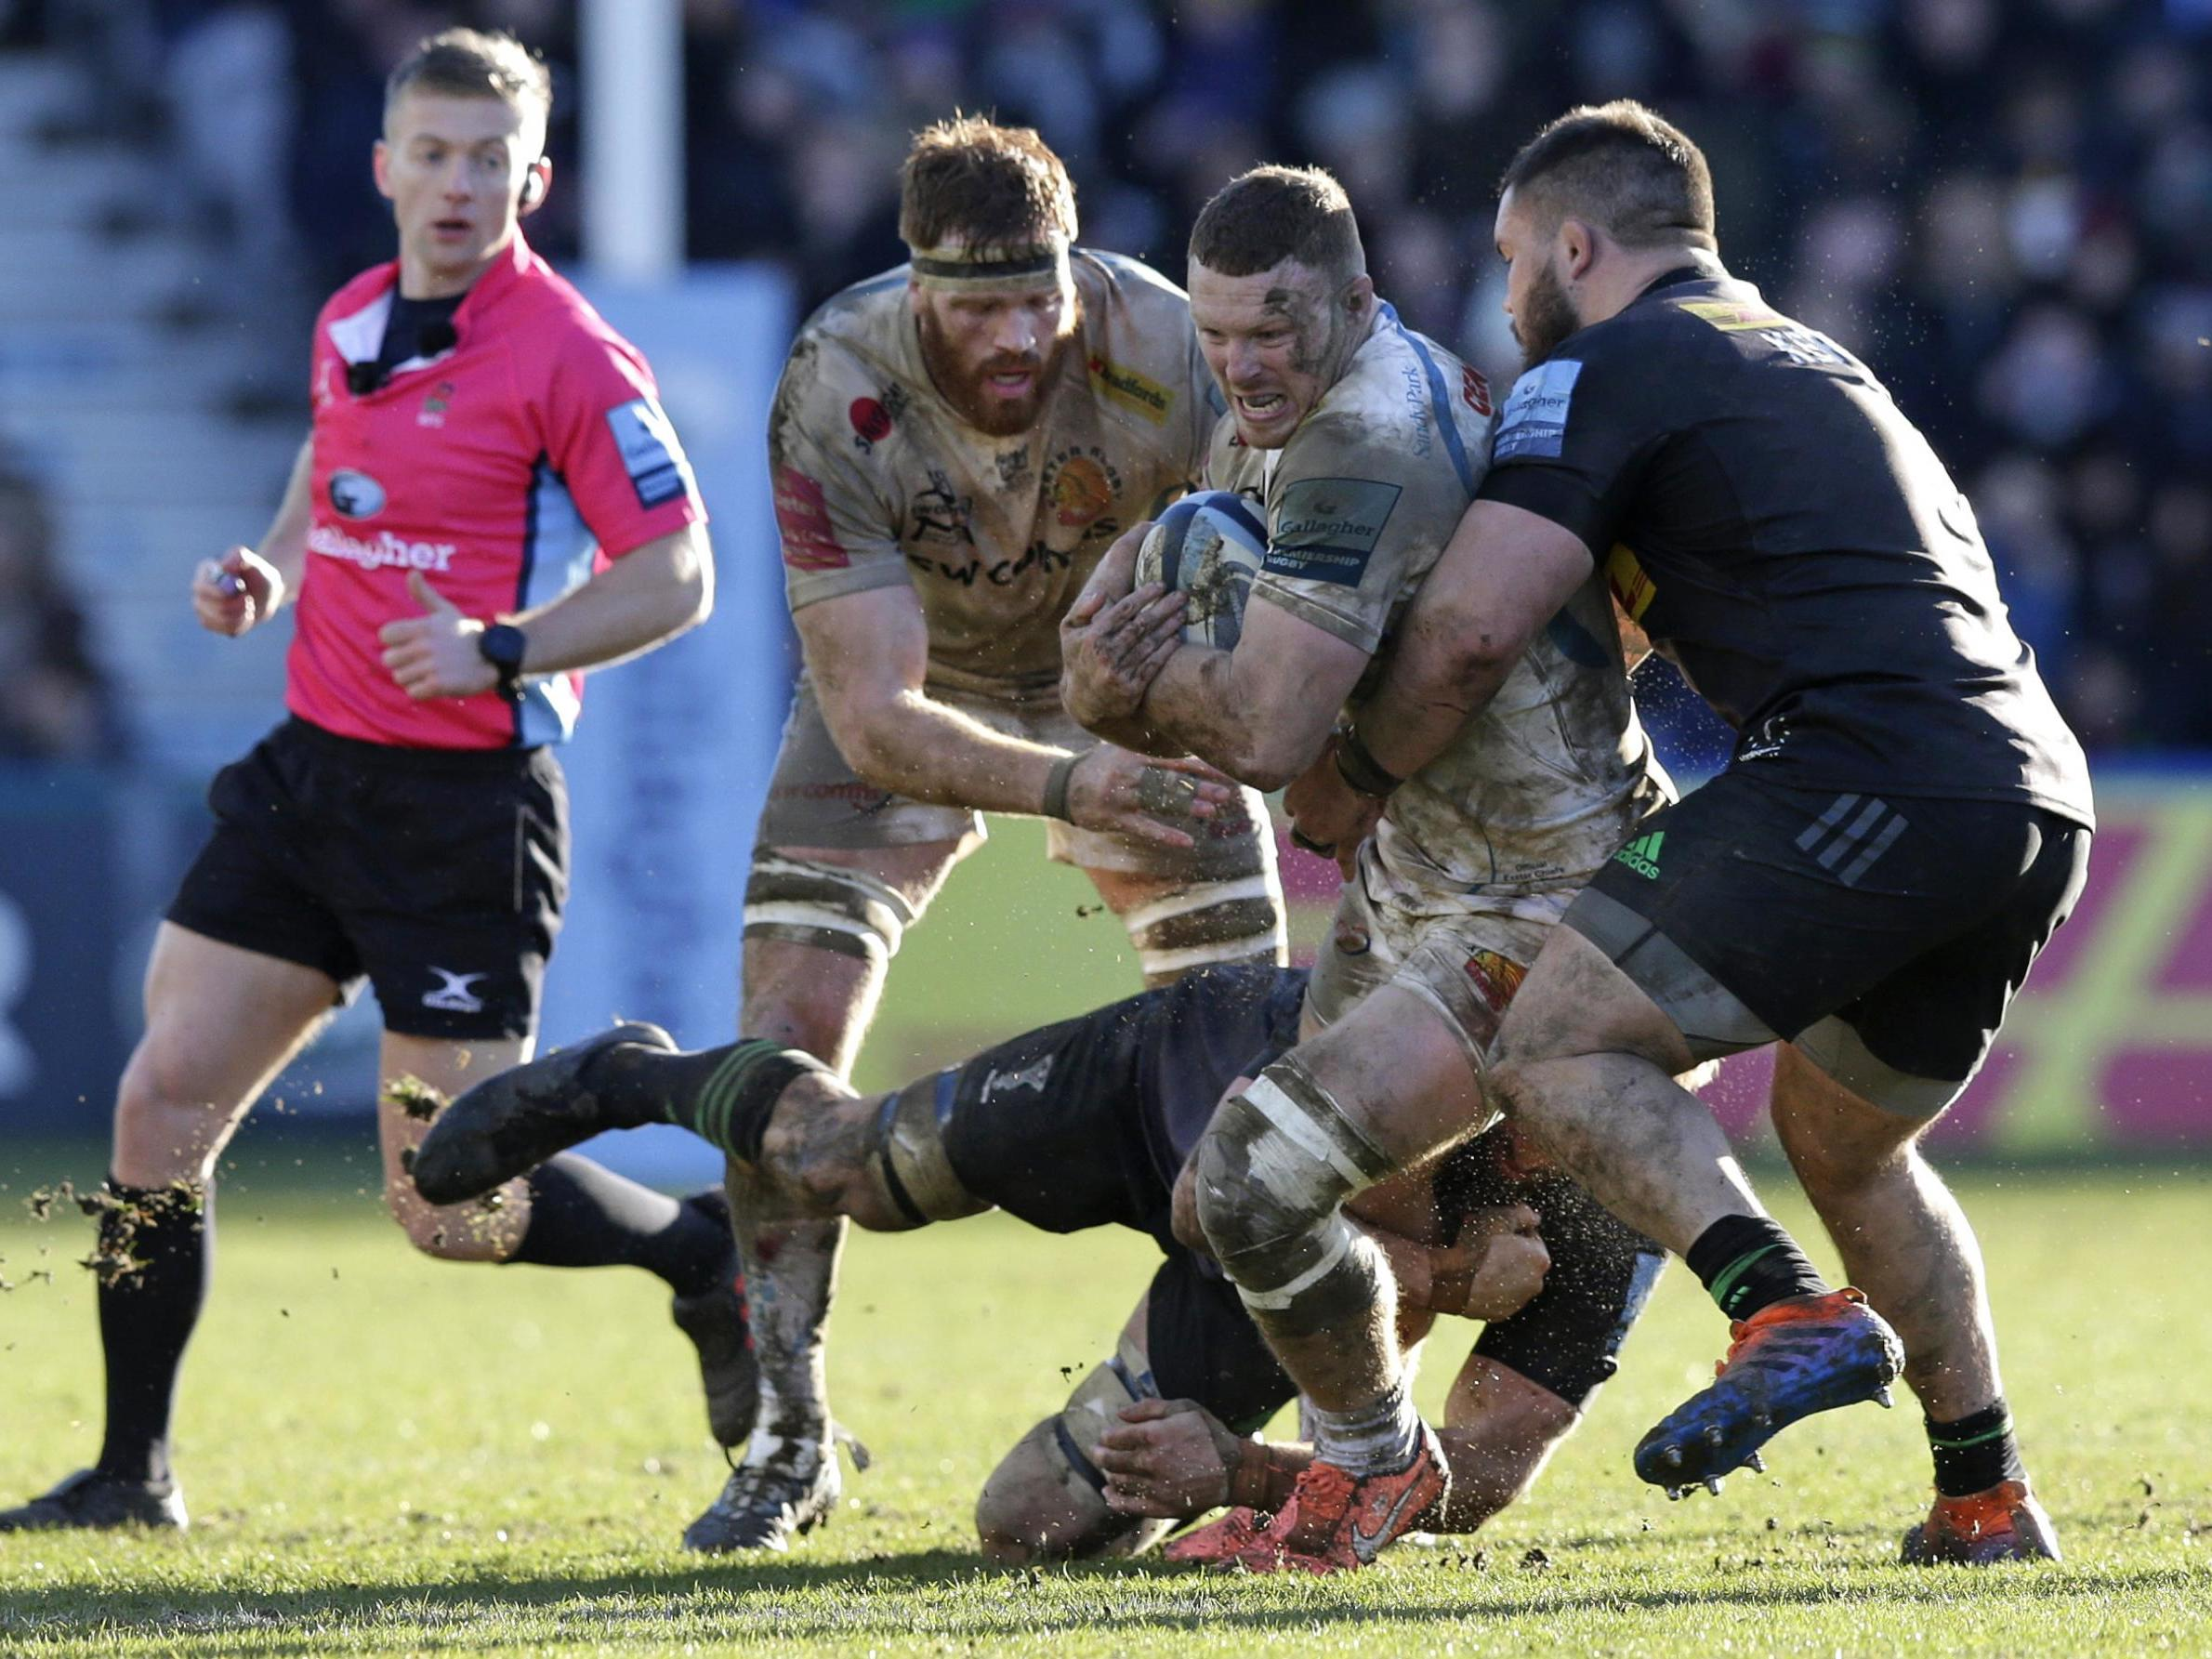 Harlequins vs Exeter result: Quins stun Chiefs with last-gasp penalty try